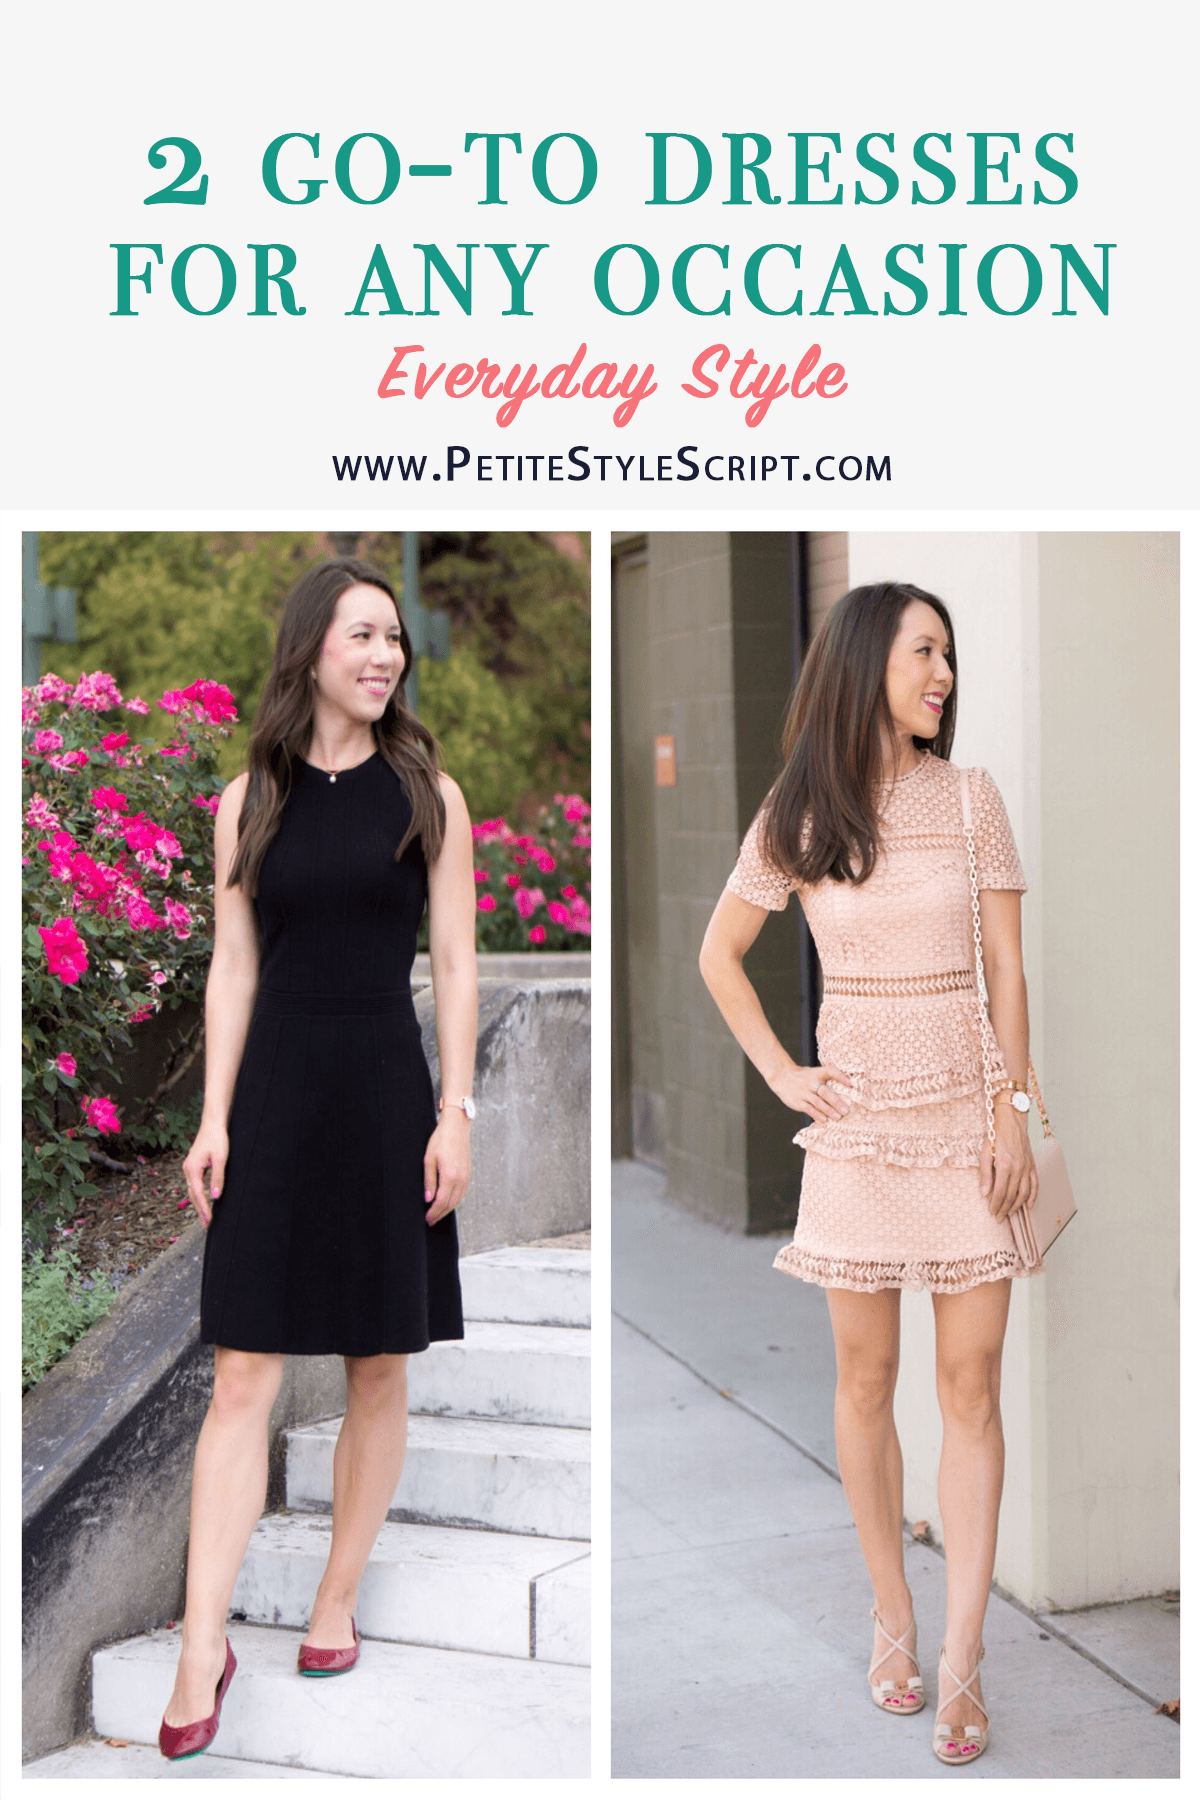 2 Go-To Dresses for Any Occasion: LBD + Lace - Petite Style Script